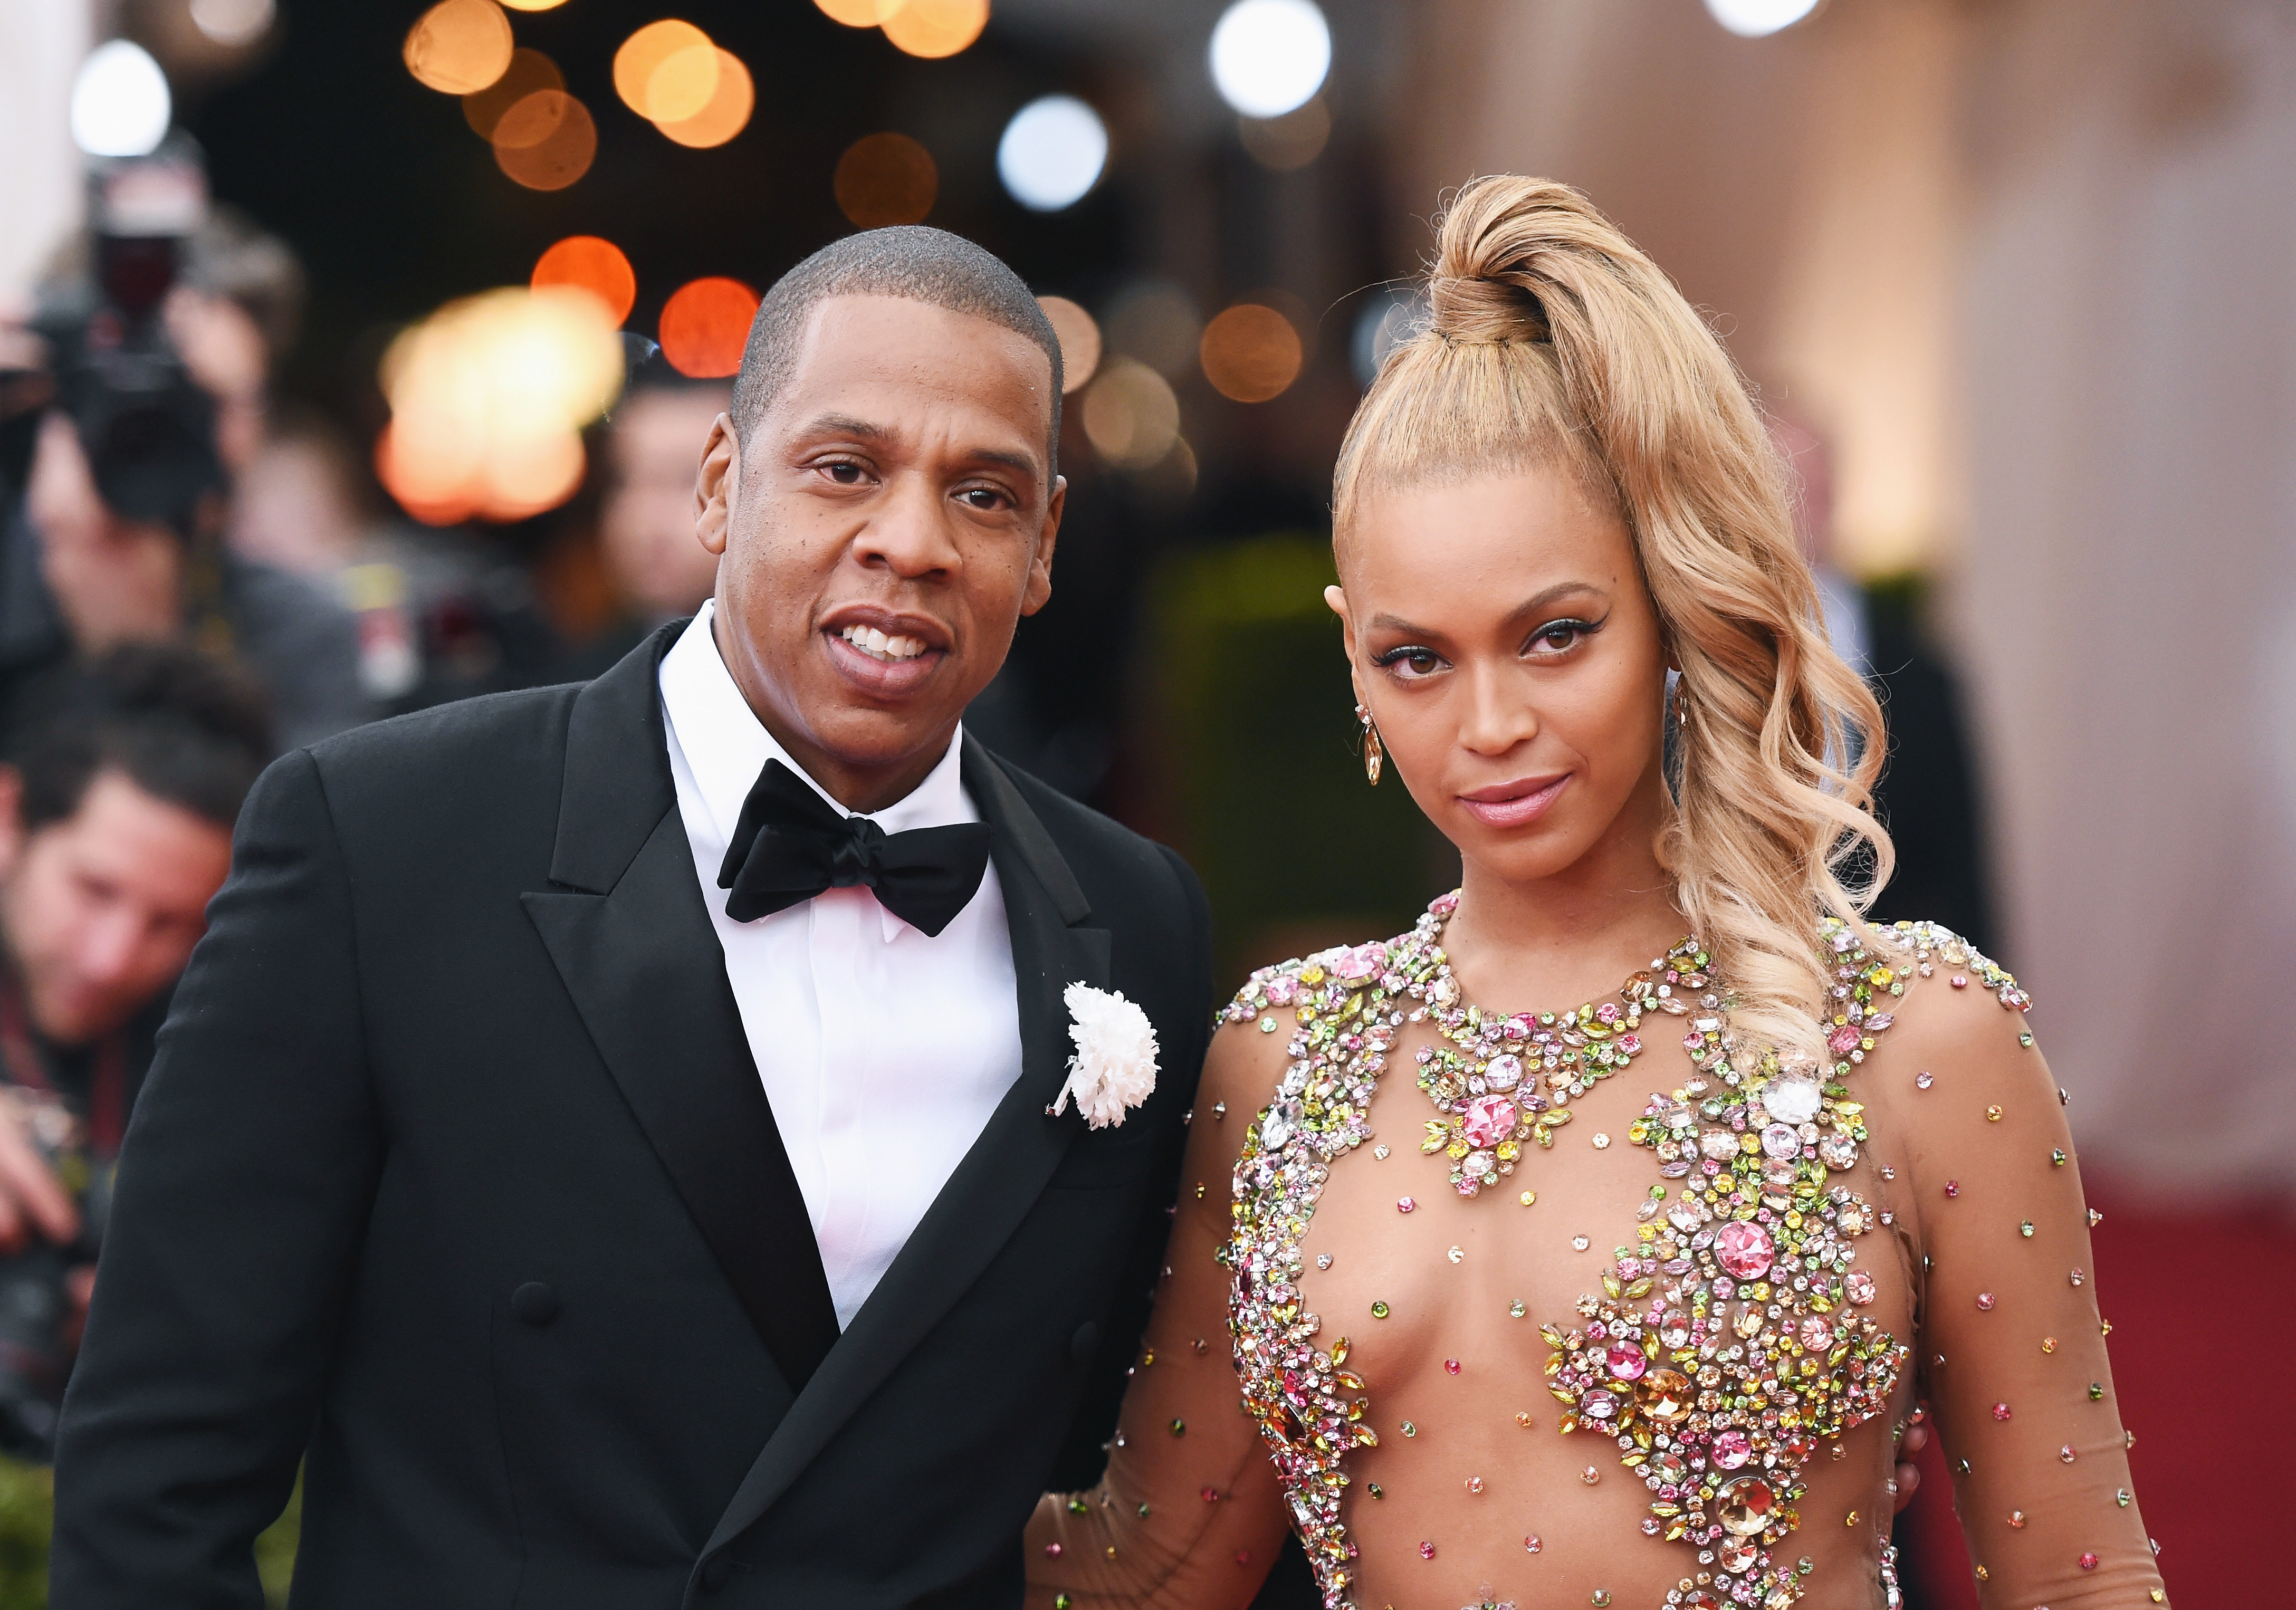 See Jay Z Affectionately Embrace Beyoncé in This Adorable Photo